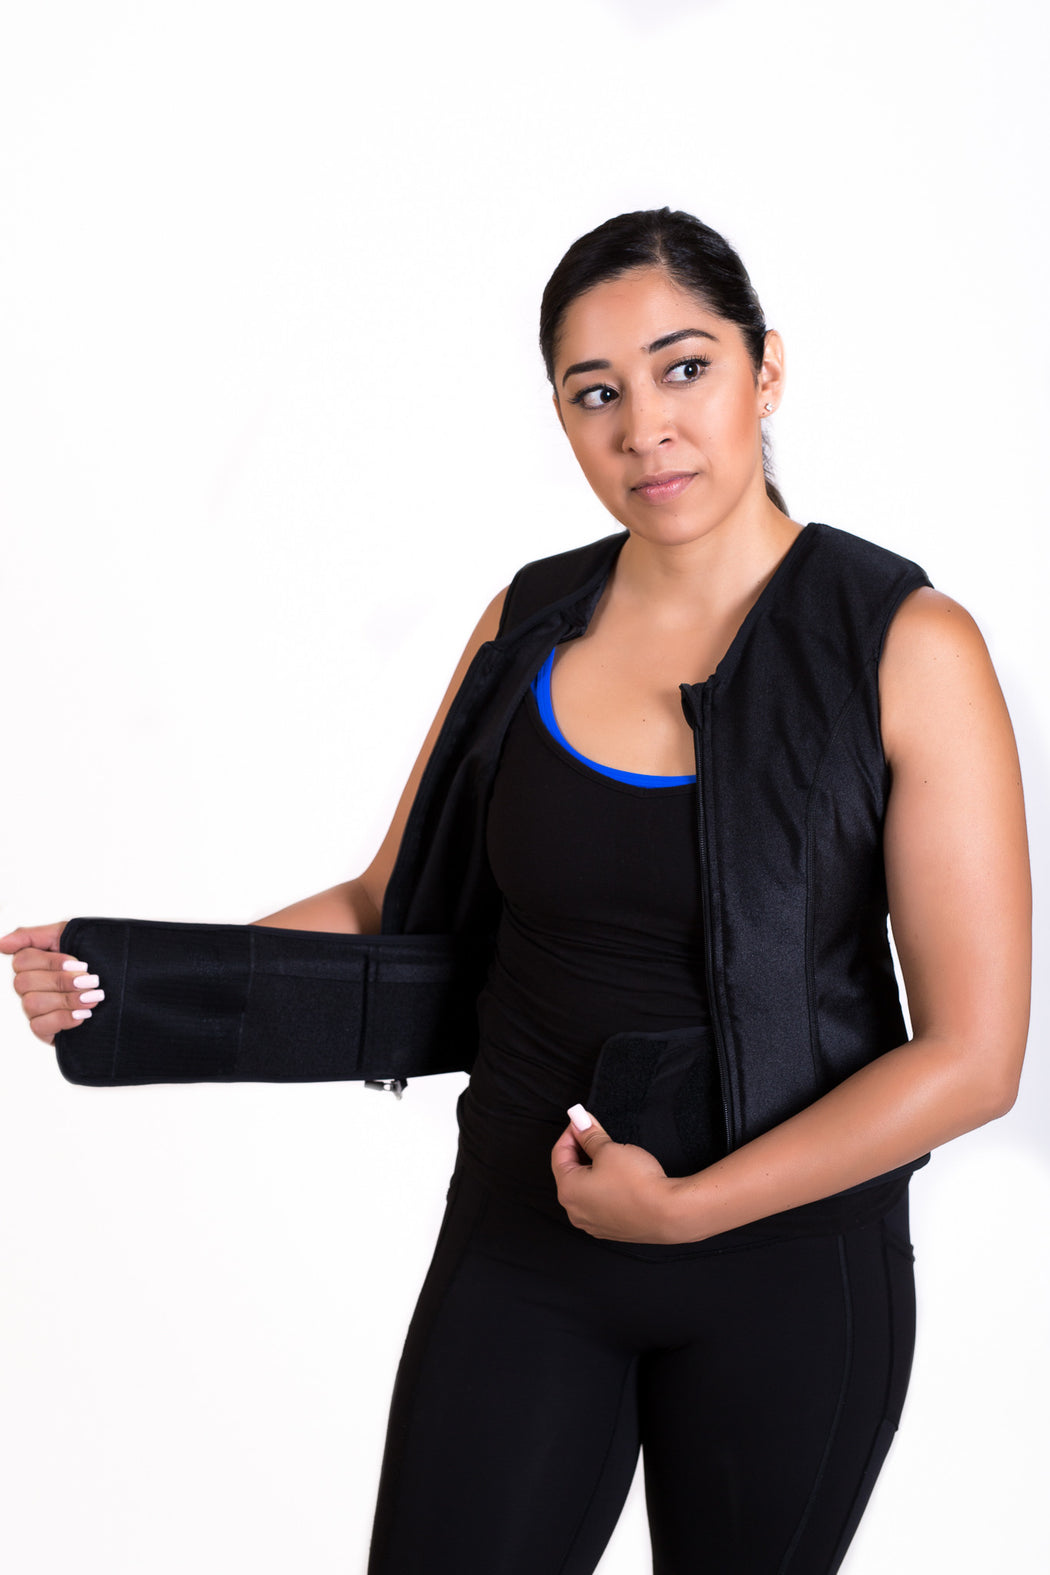 WEIGHT VEST - POWER BLACK (4 lbs of Weight Thins included)